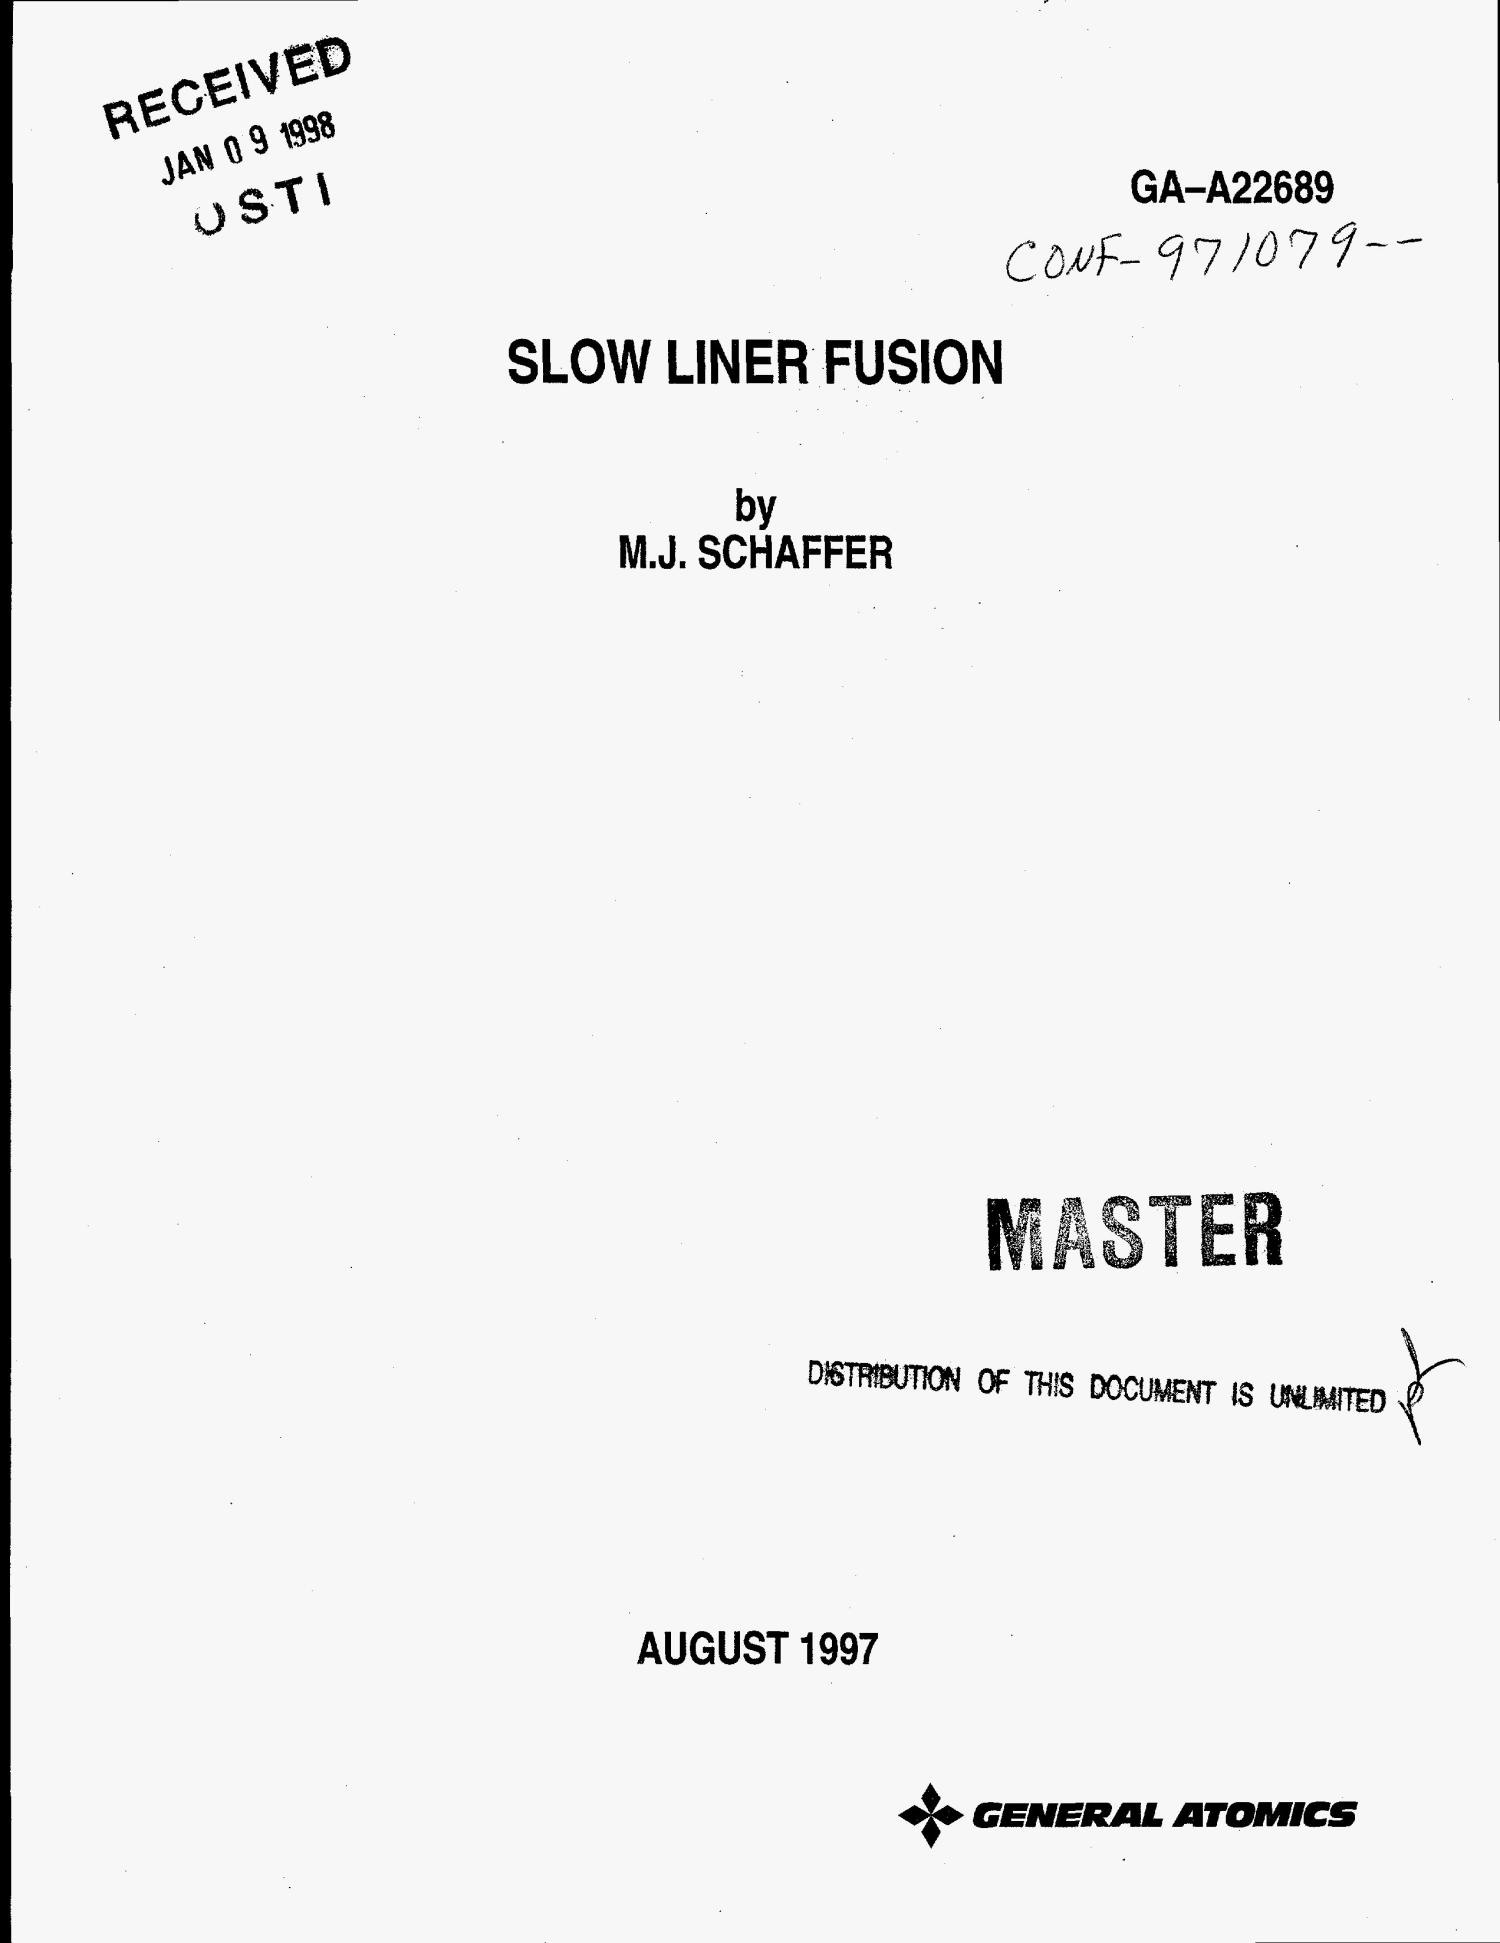 Slow liner fusion                                                                                                      [Sequence #]: 1 of 7